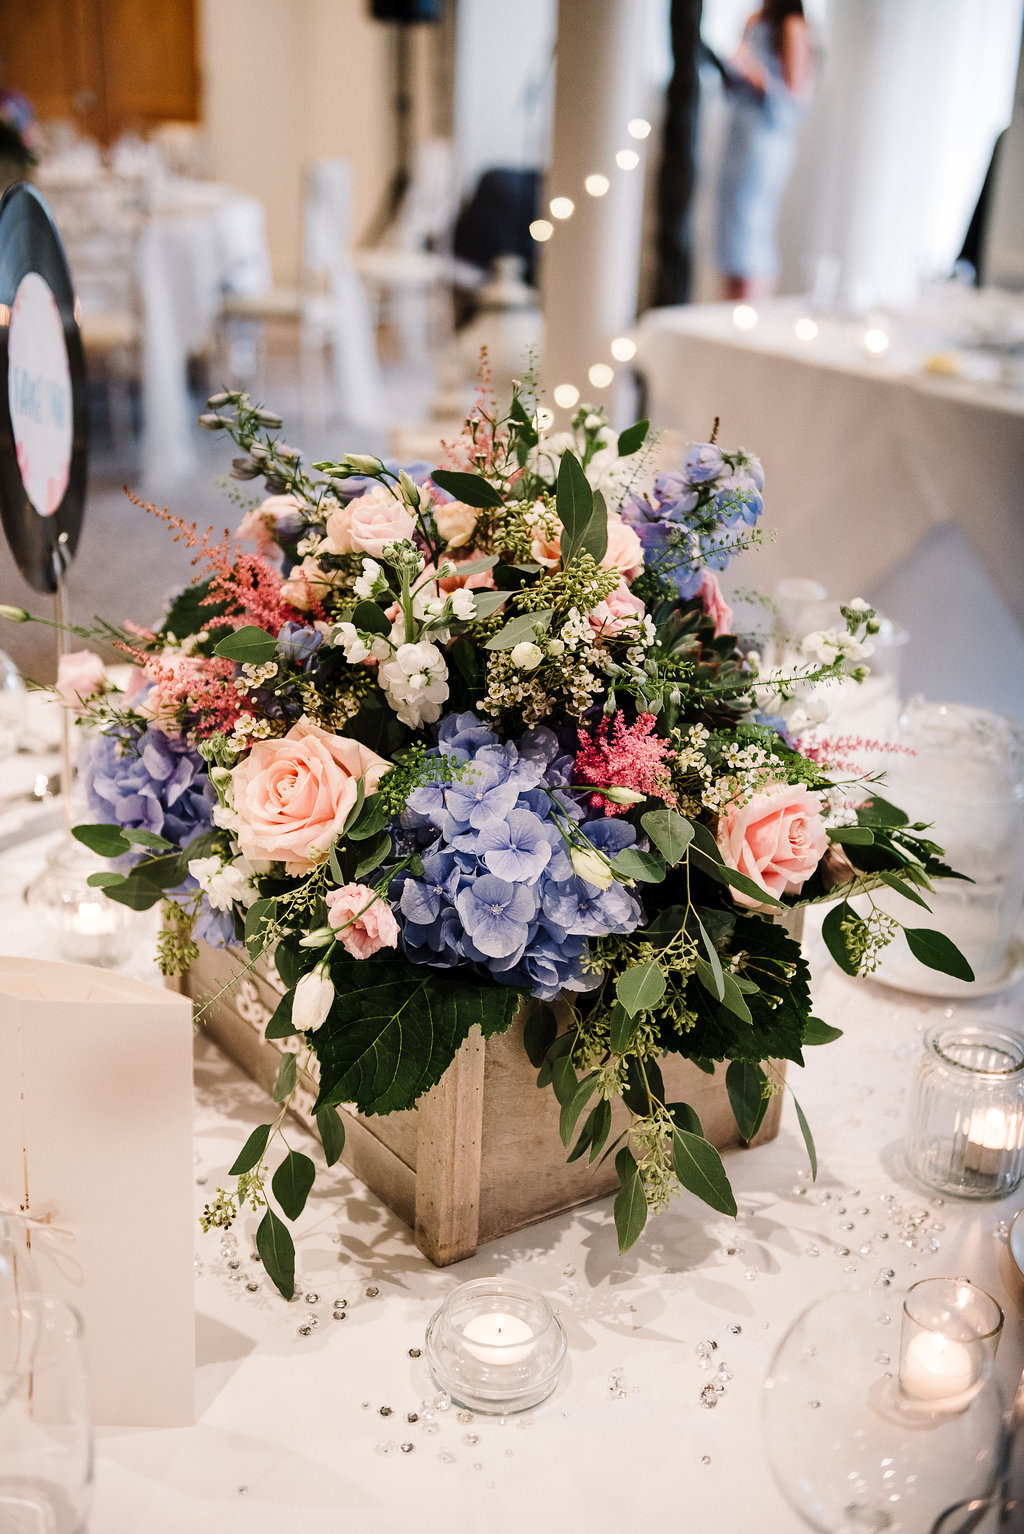 Table centre piece. Flowers in wooden crates